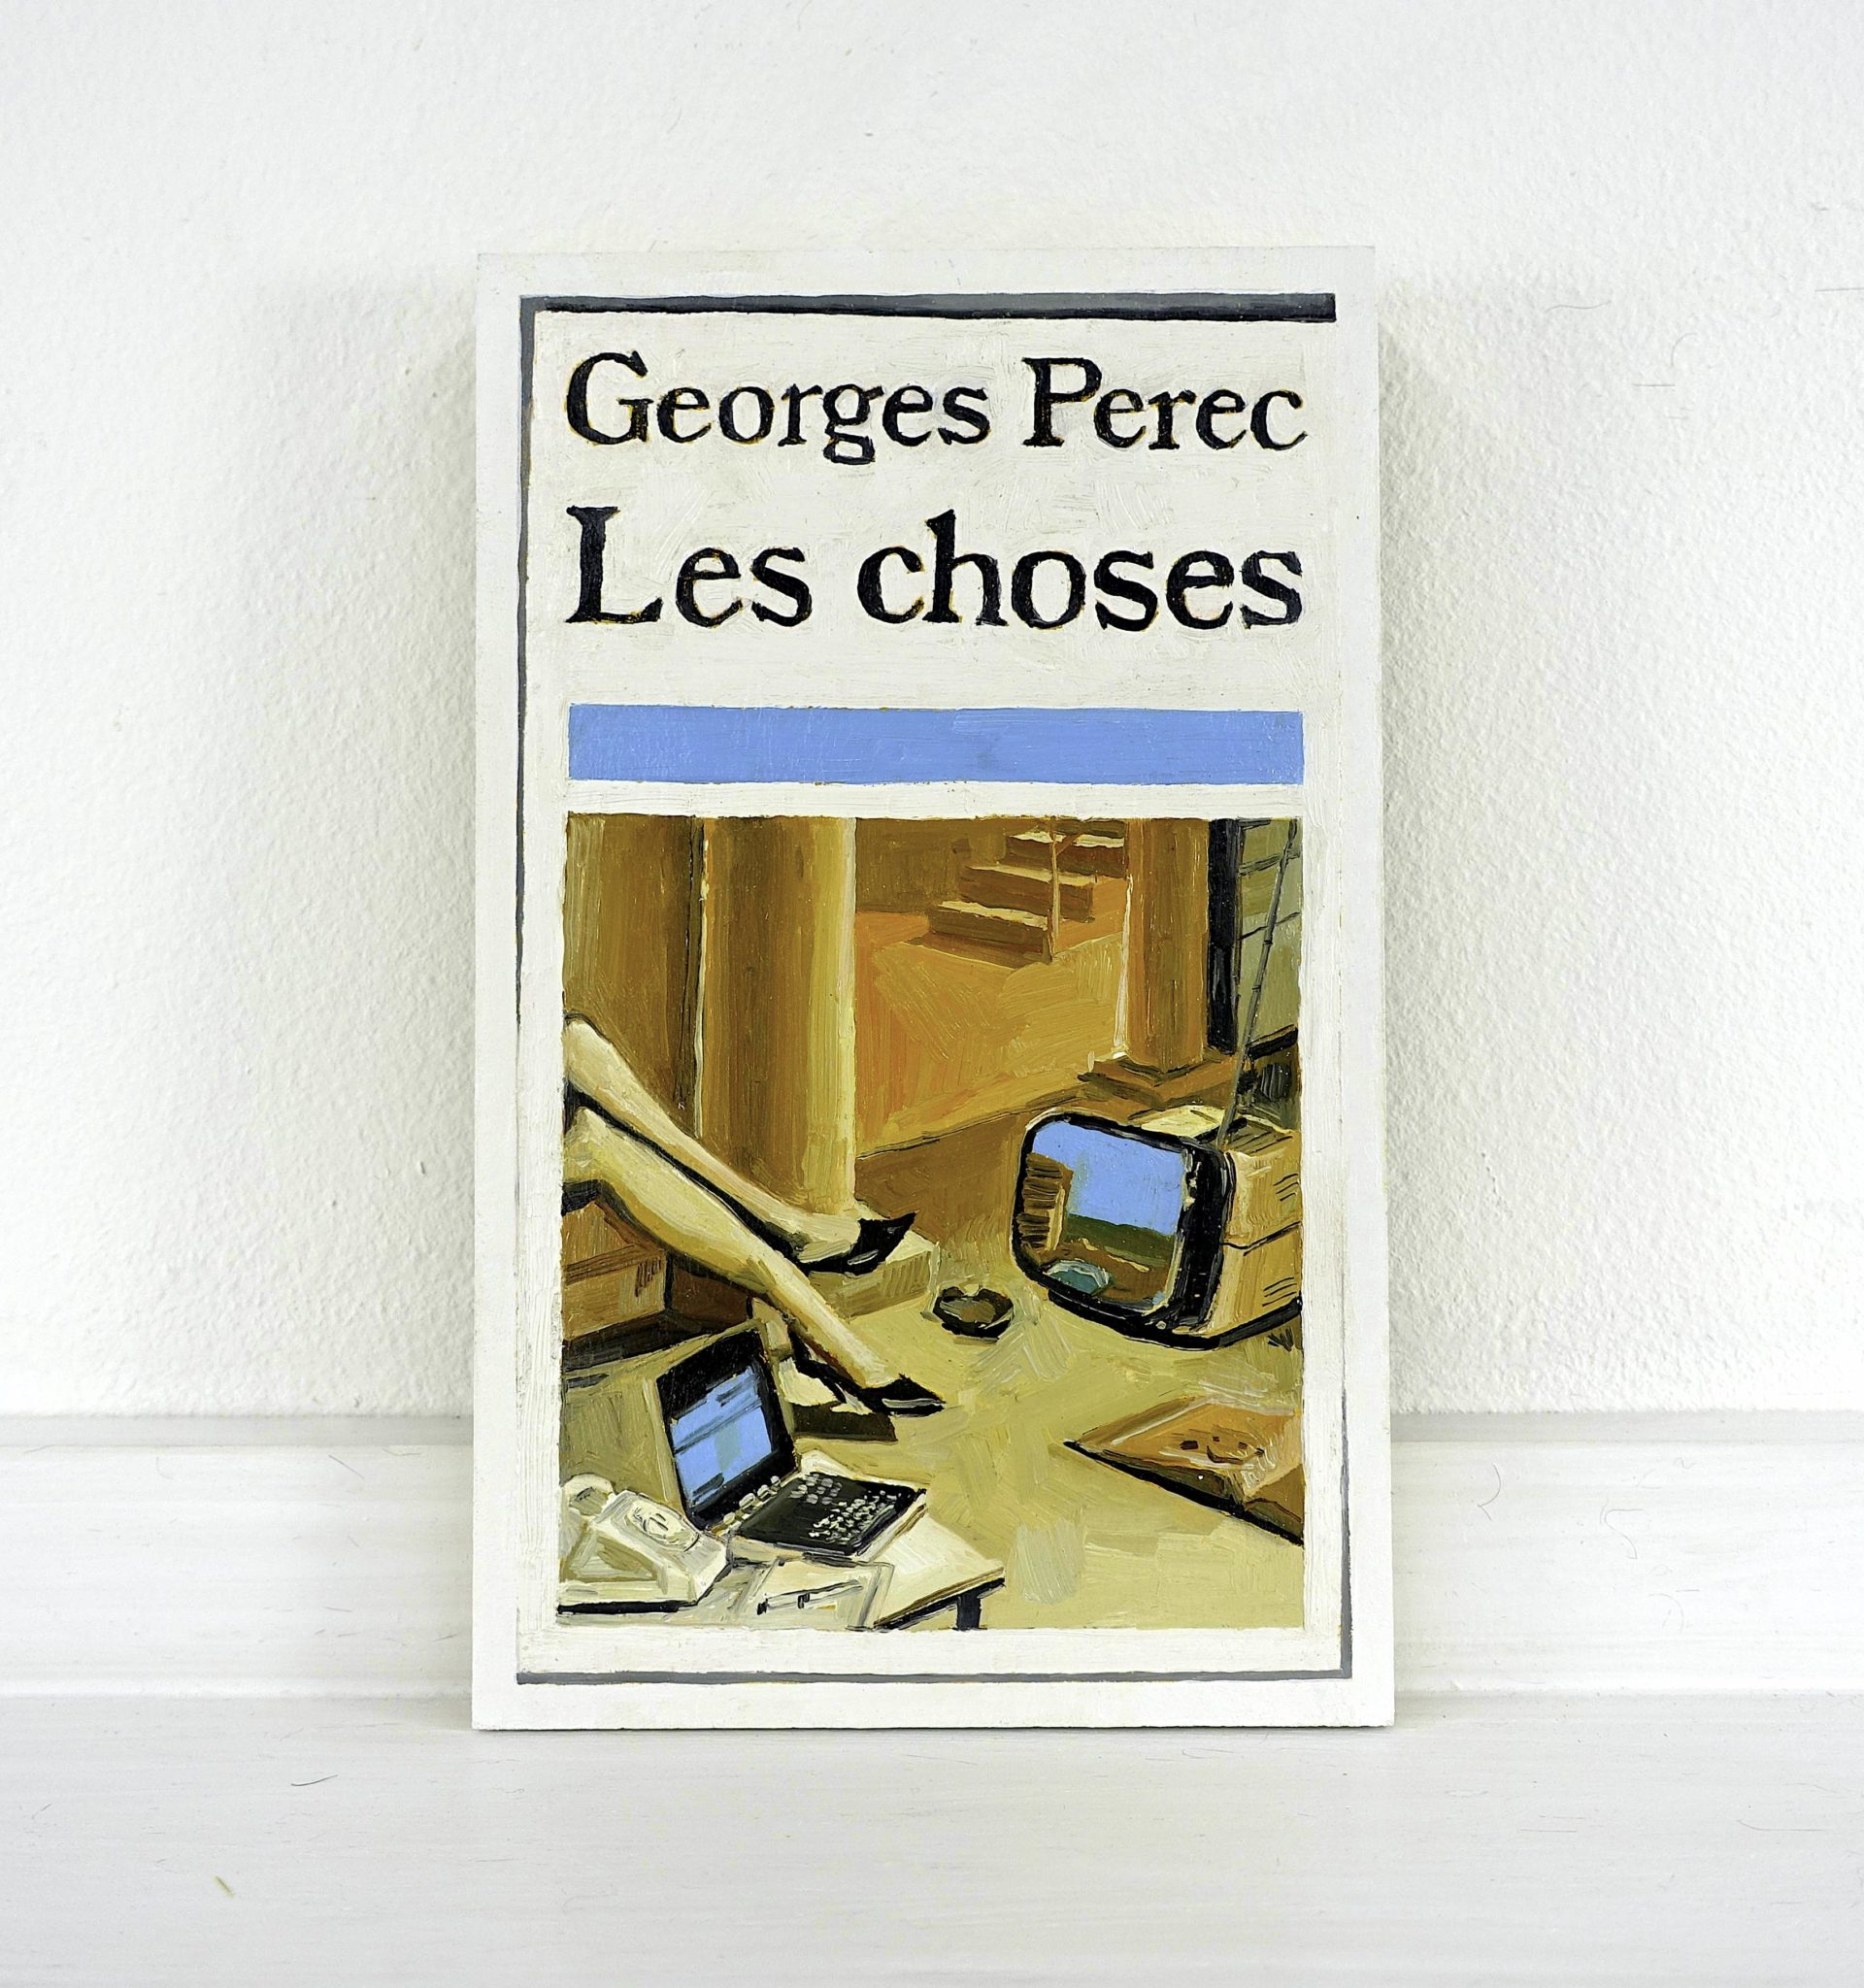 Conrad Bakker, Untitled Project_ Things [Les choses . Georges Perec. Pocket. Illustration de couv- Peyrols. Renaudot 1965 | eBay]